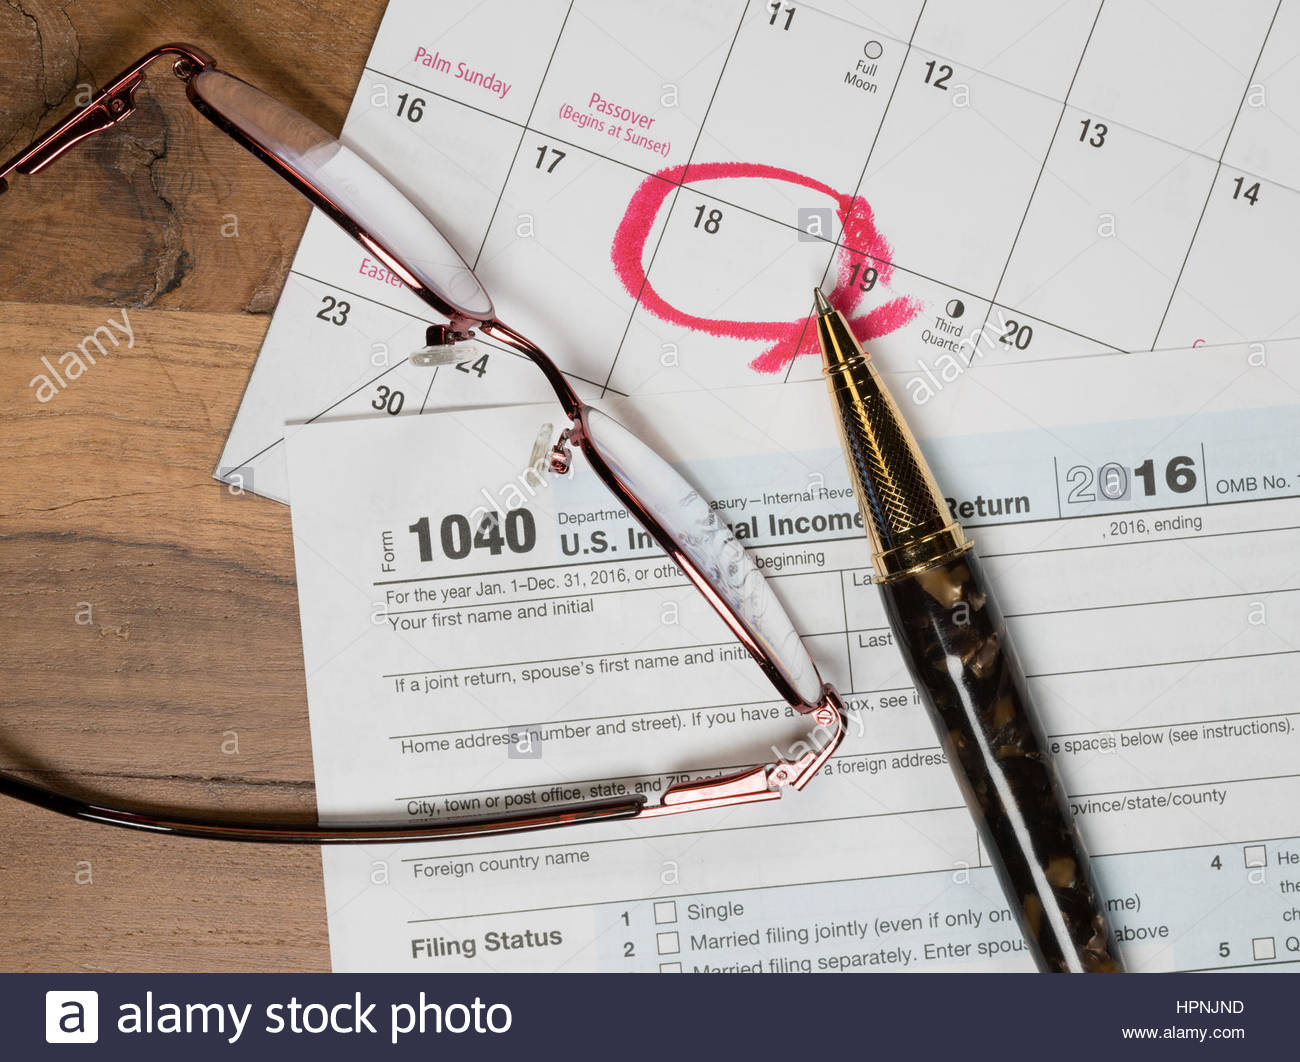 Tax Form 1040 For 2016